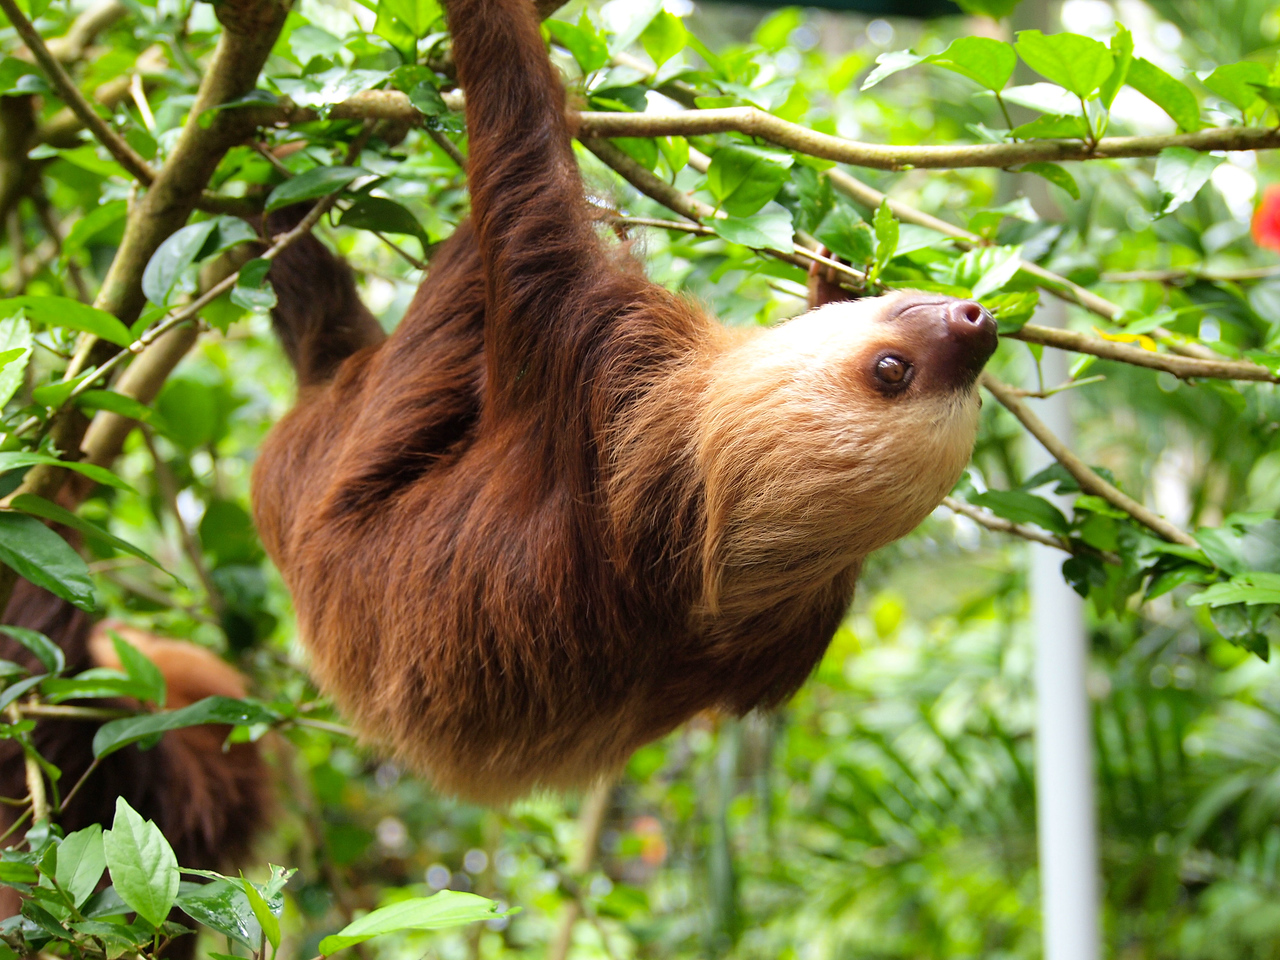 Sloth at Jaguar Rescue Center in Costa Rica